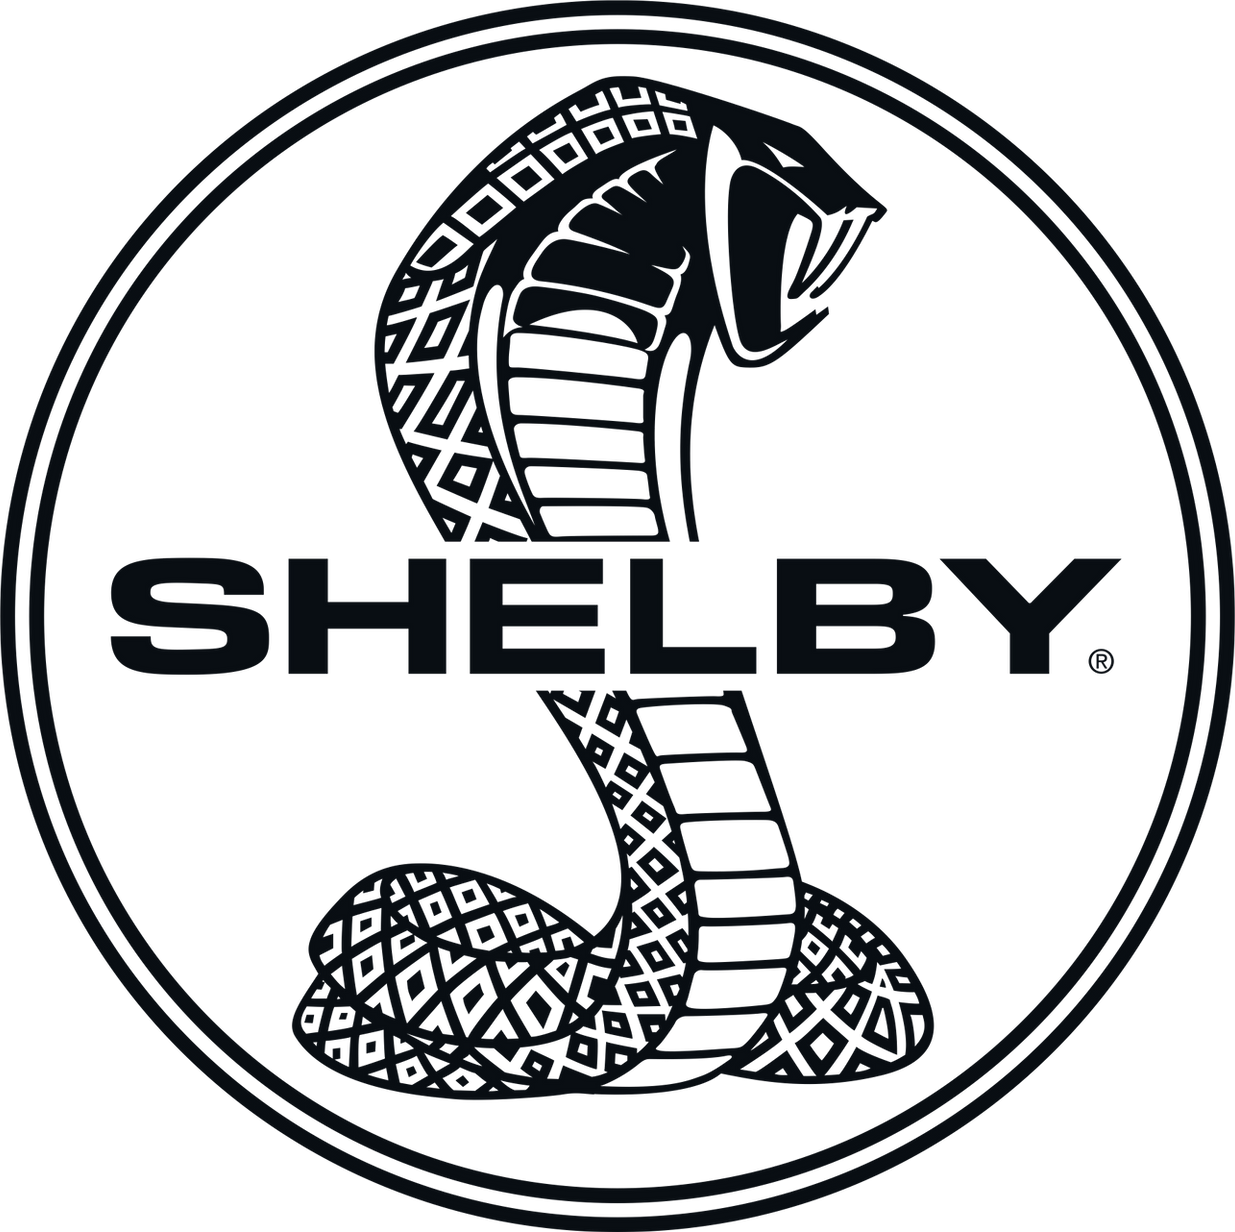 Shelby%20Circle%20black%201_edited.png